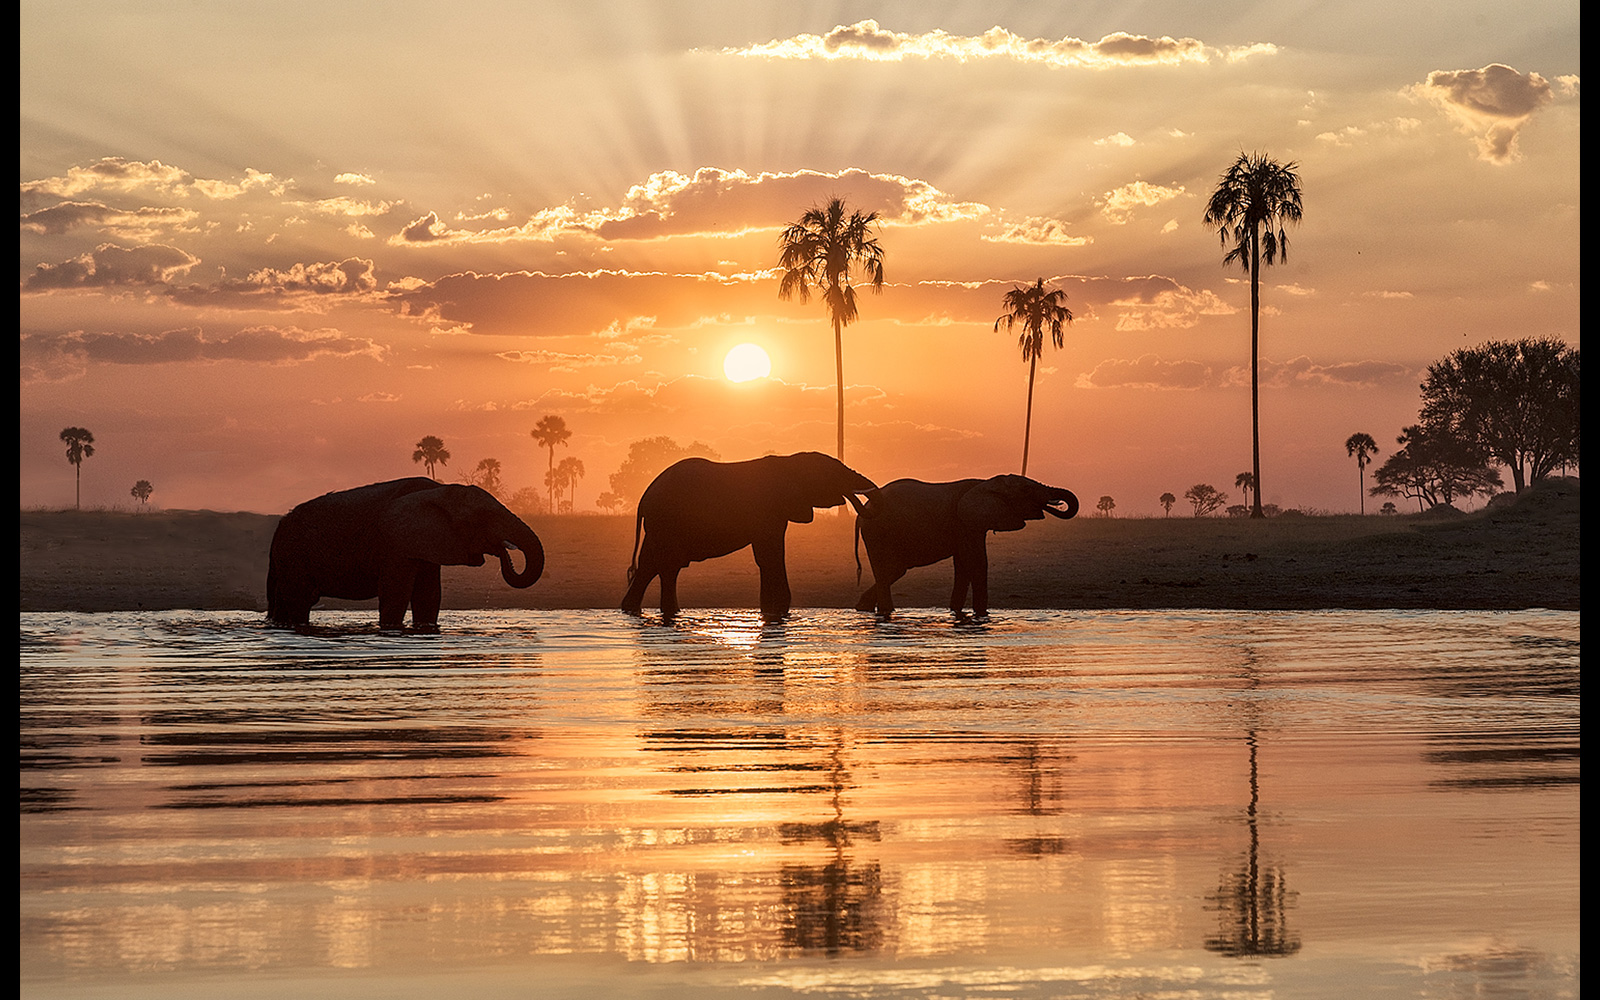 A beautiful atmospheric sunset with elephants in Hwange National Park, Zimbabwe © Greg Metro (Photographer of the Year 2018 Top 101)